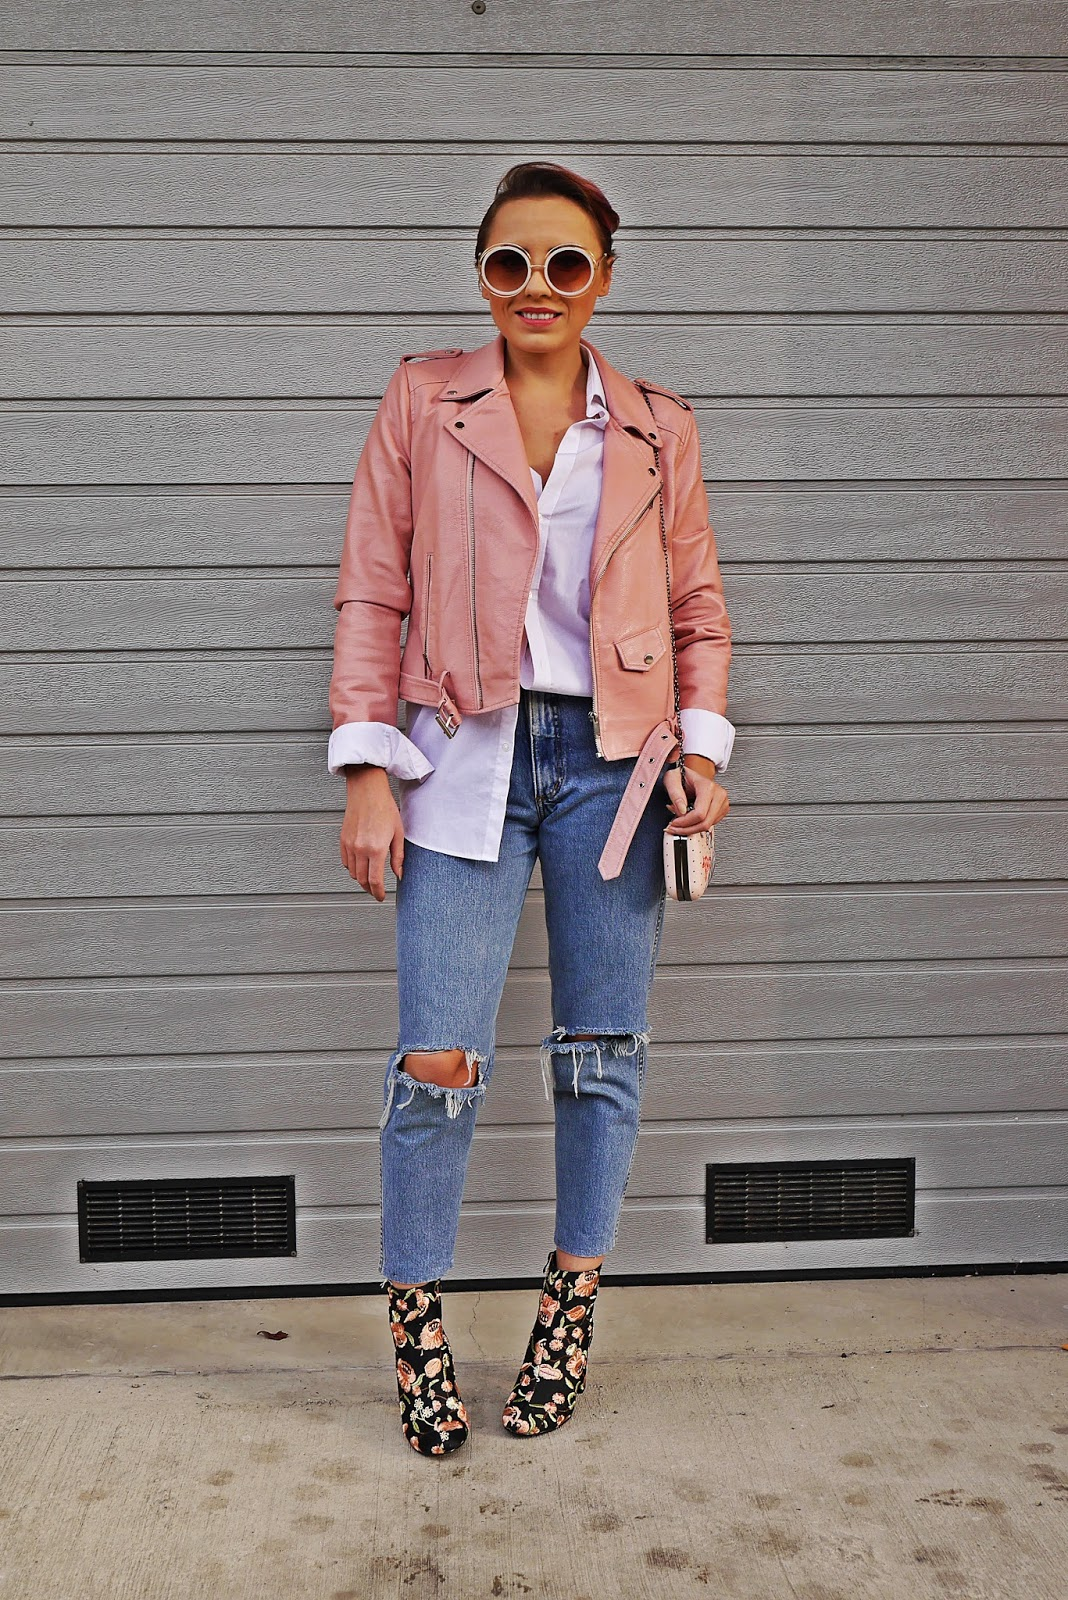 3_pink_leather_jacket_embroidery_boots_outfit_karyn_blog_modowy_271017a